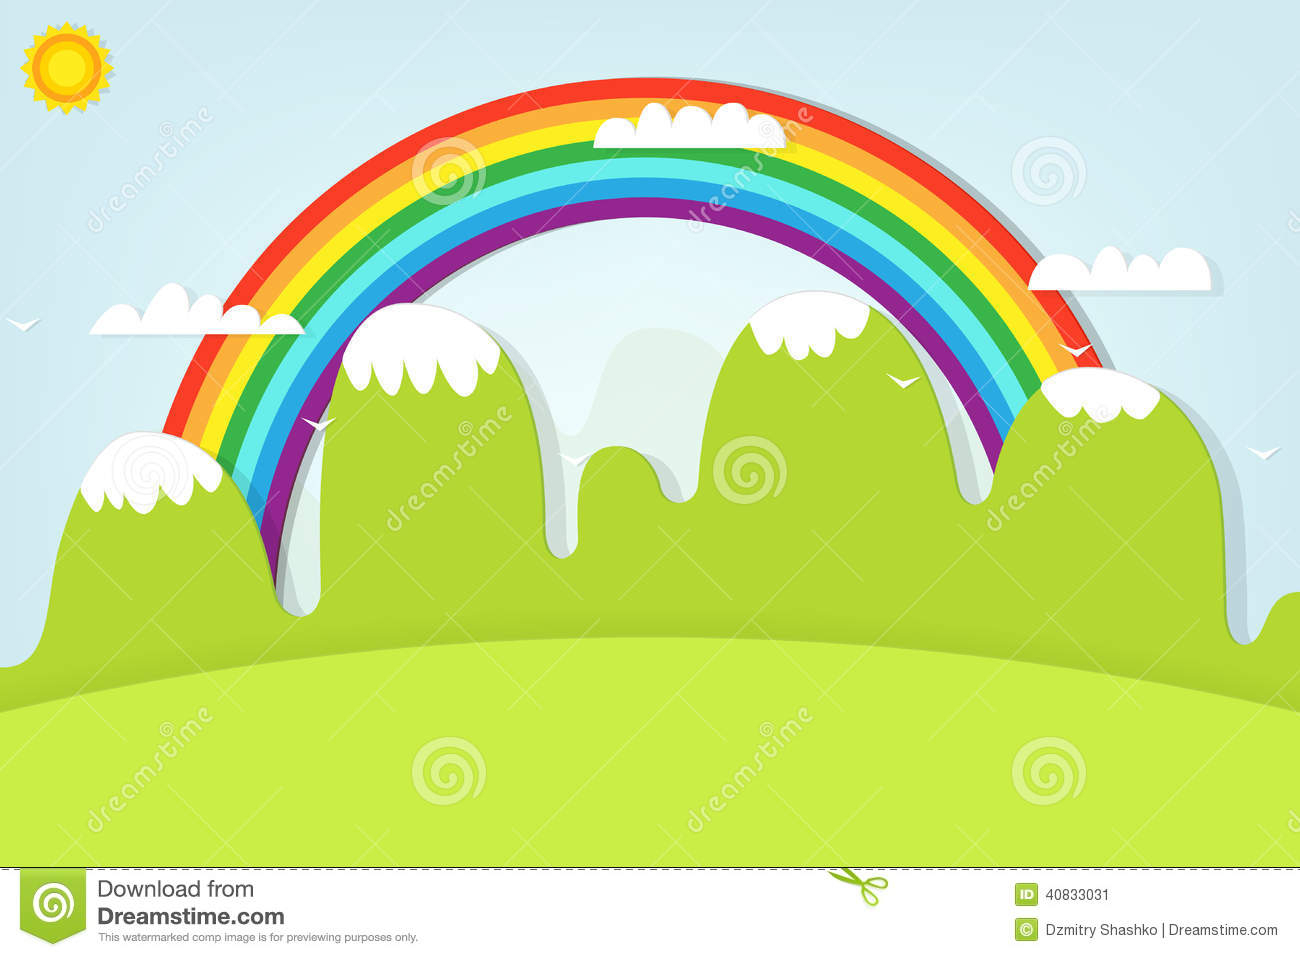 clip art transparent download Drawing rainbows mountain. Rainbow landscape and stock